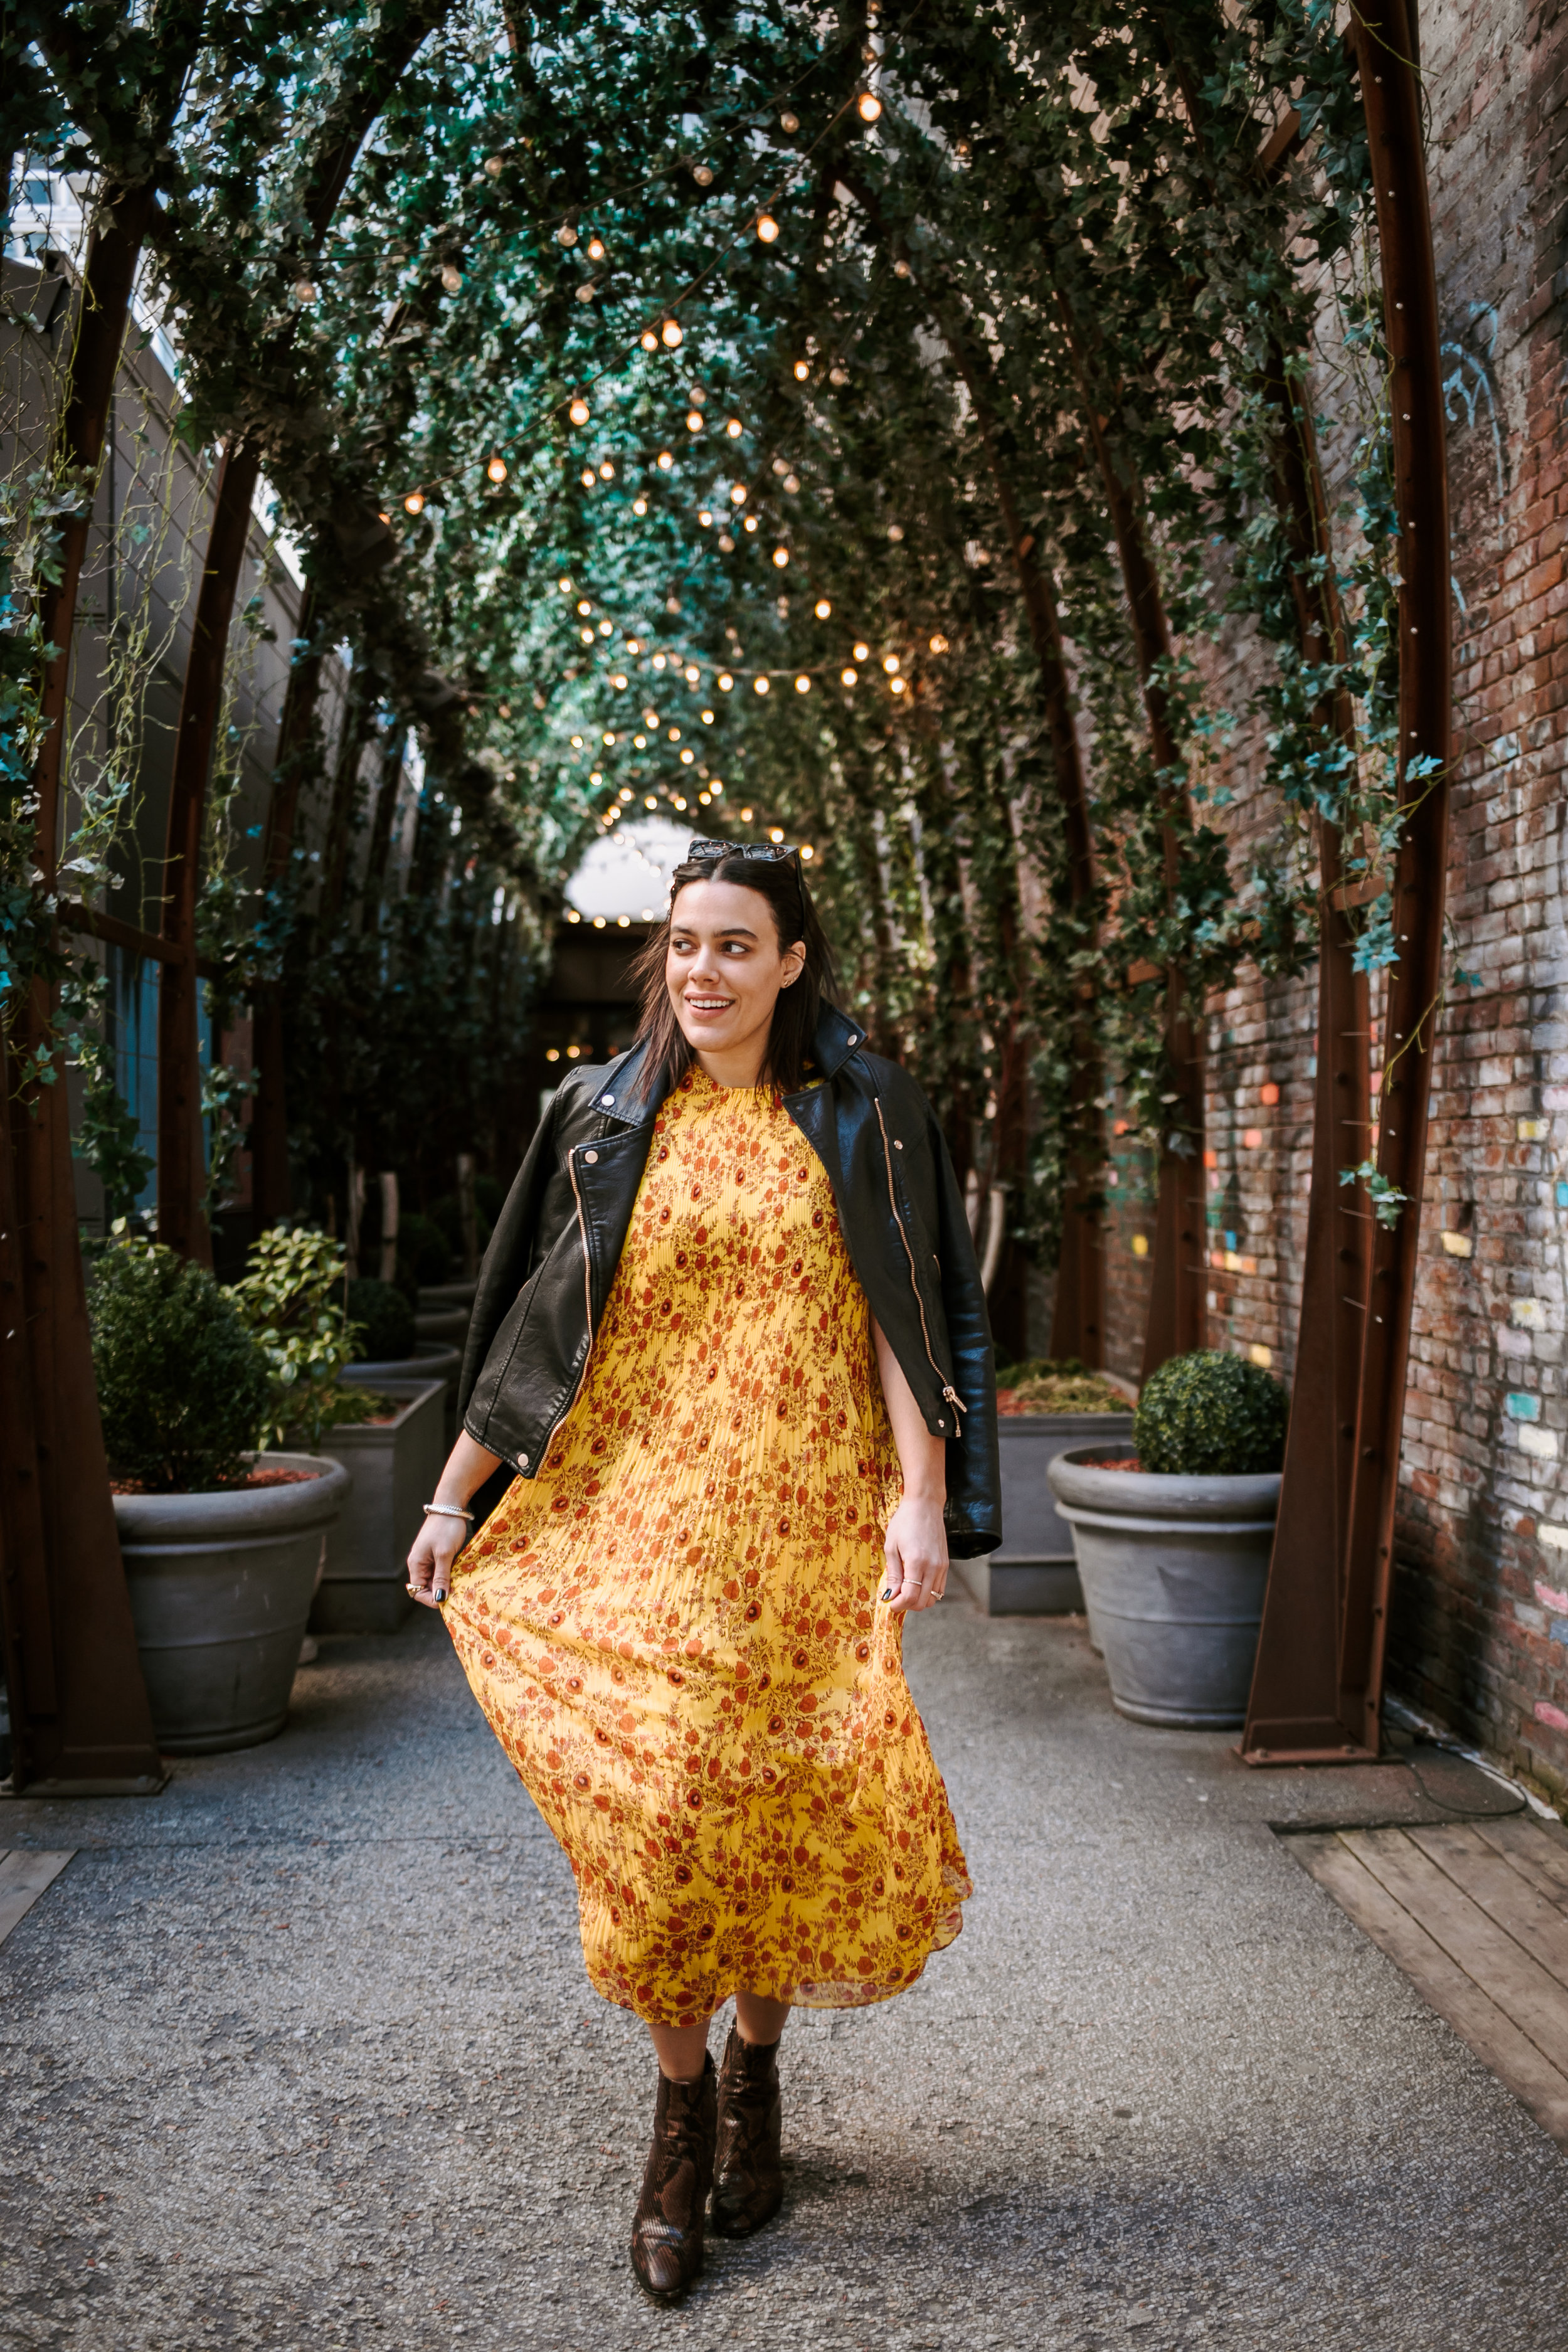 how-to-style-zara-yellow-floral-dress-with-brown-zara-snakeskin-boots-how-to-mix-and-match-prints-latina-new-york-city-fashion-blogger-style-operator-spring-fashion.jpg